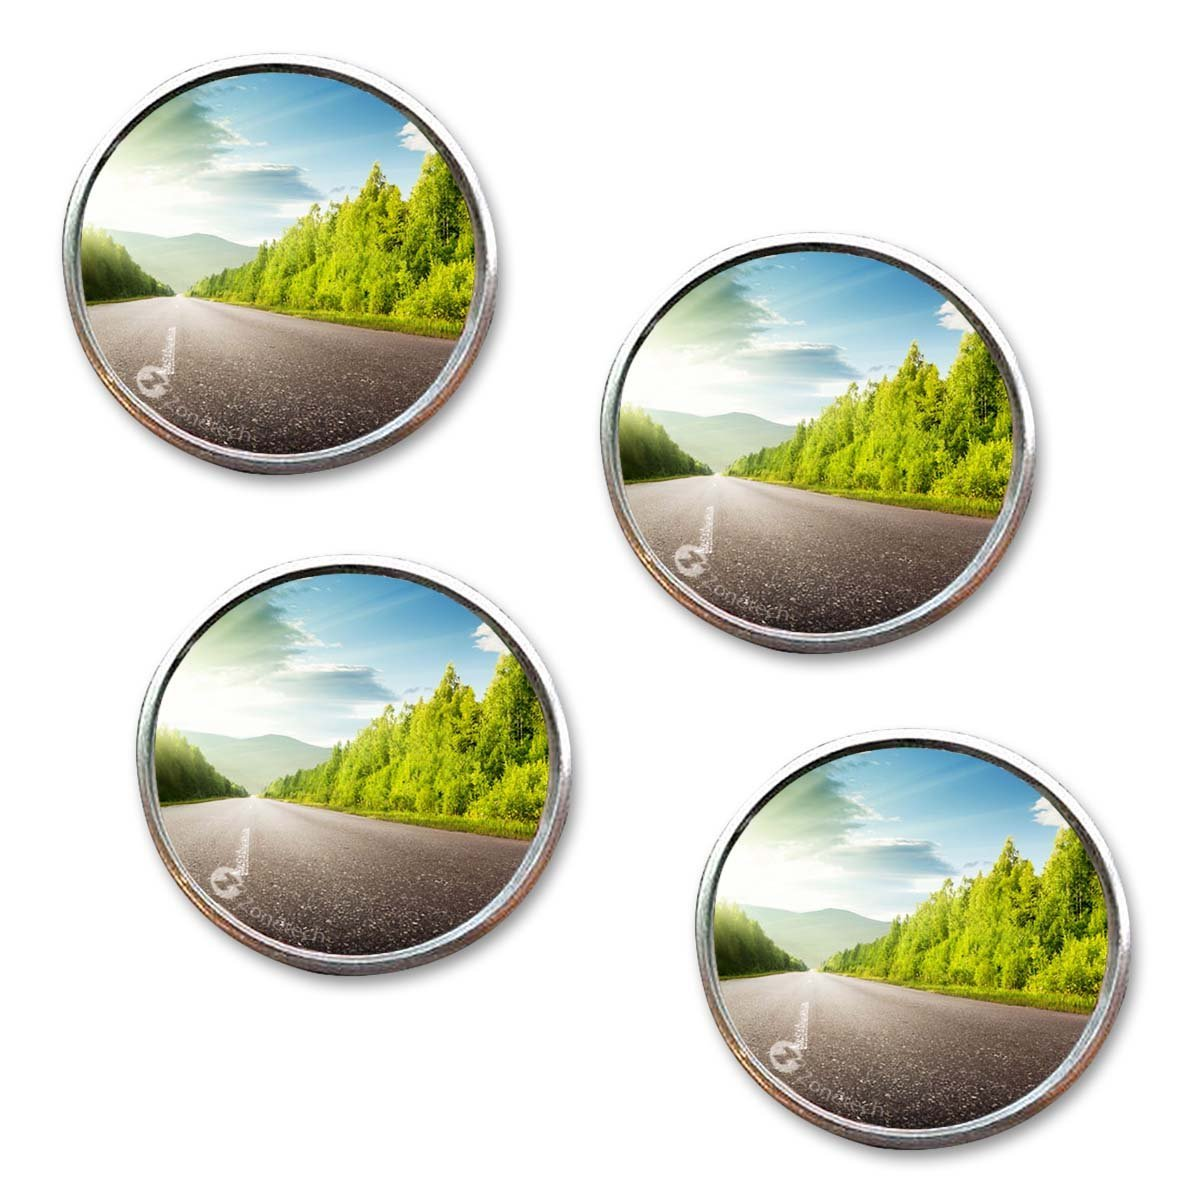 Zone Tech Rearview Blind Sport Mirrors 4 Pack Premium